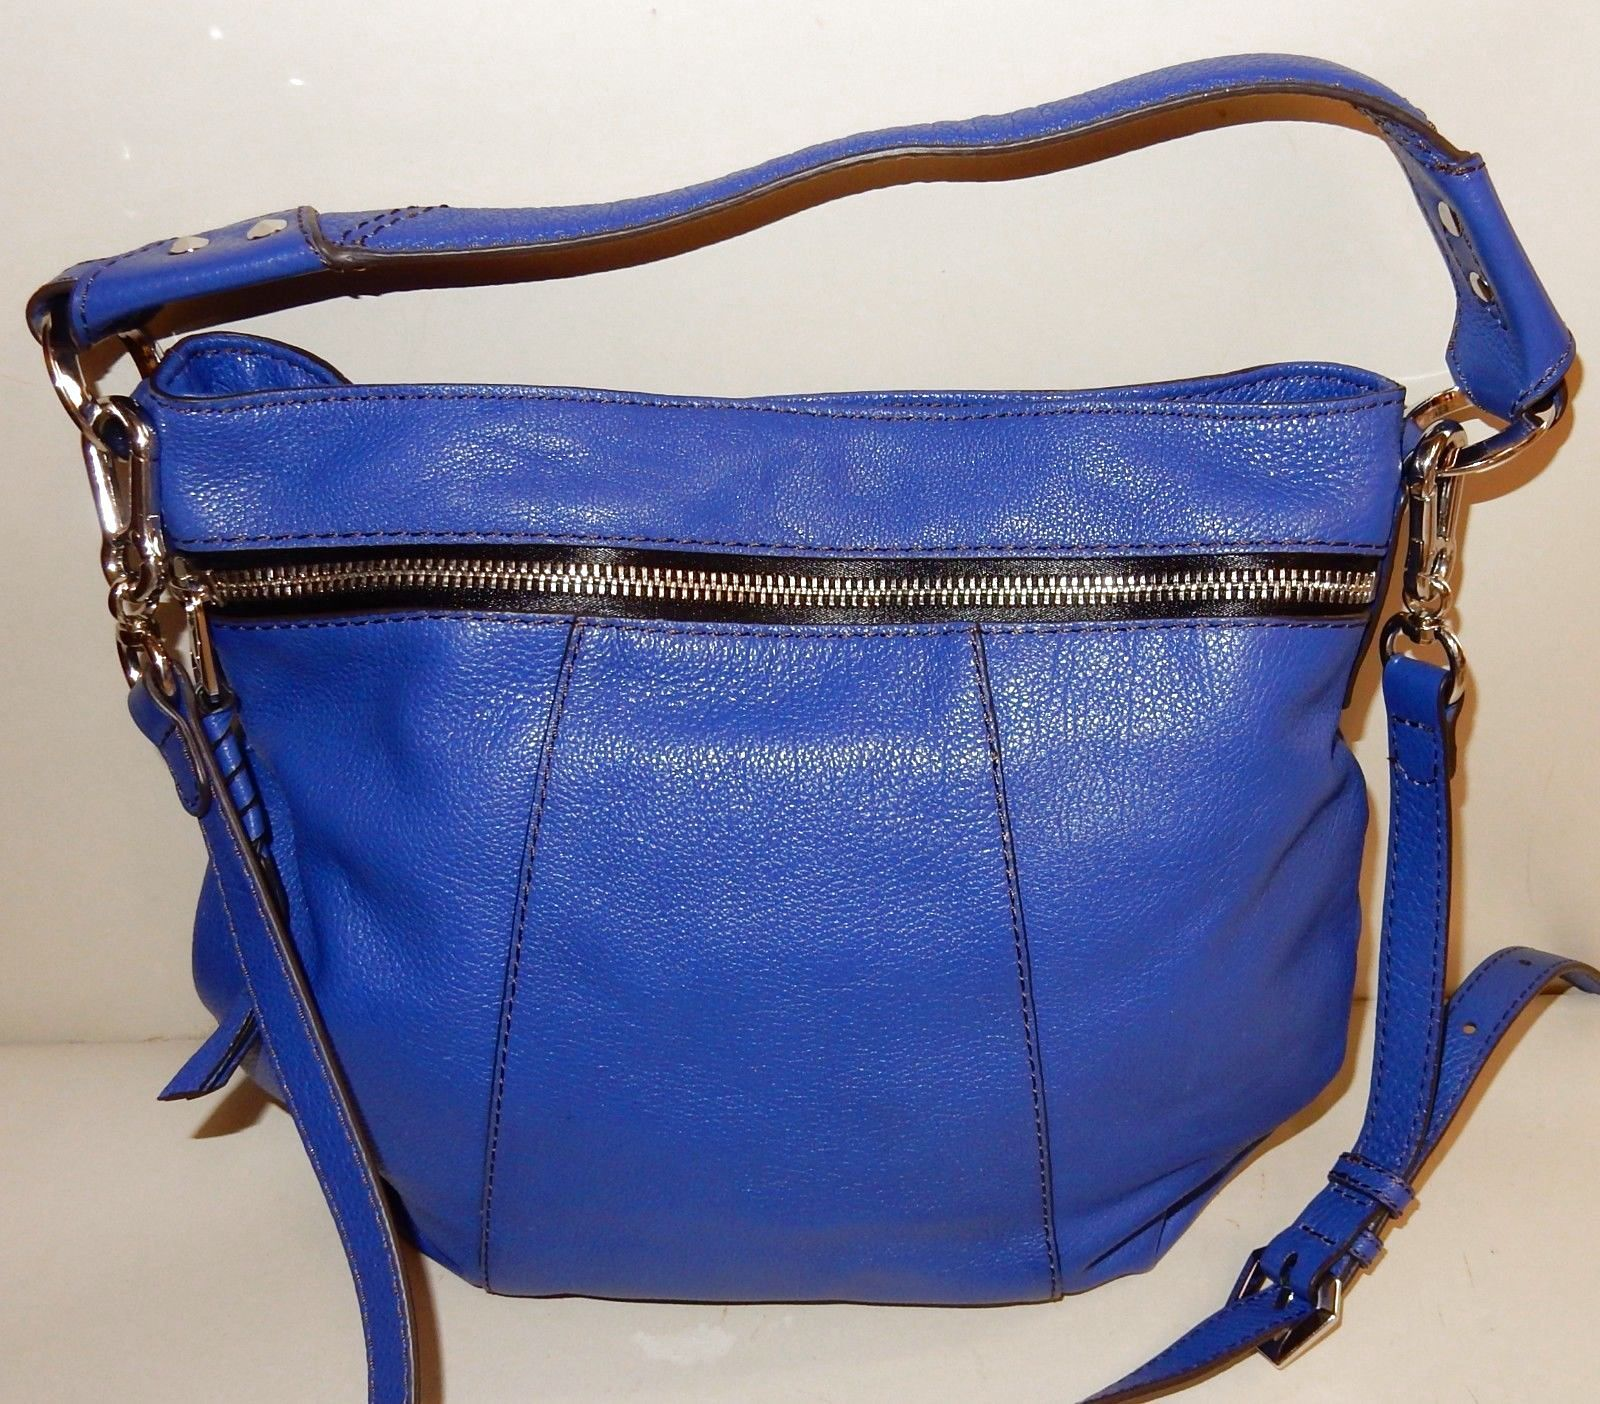 79e75b47e New orYANY Carla Italian Leather Hobo Bag Royal Blue $79.99 | orYANY ...